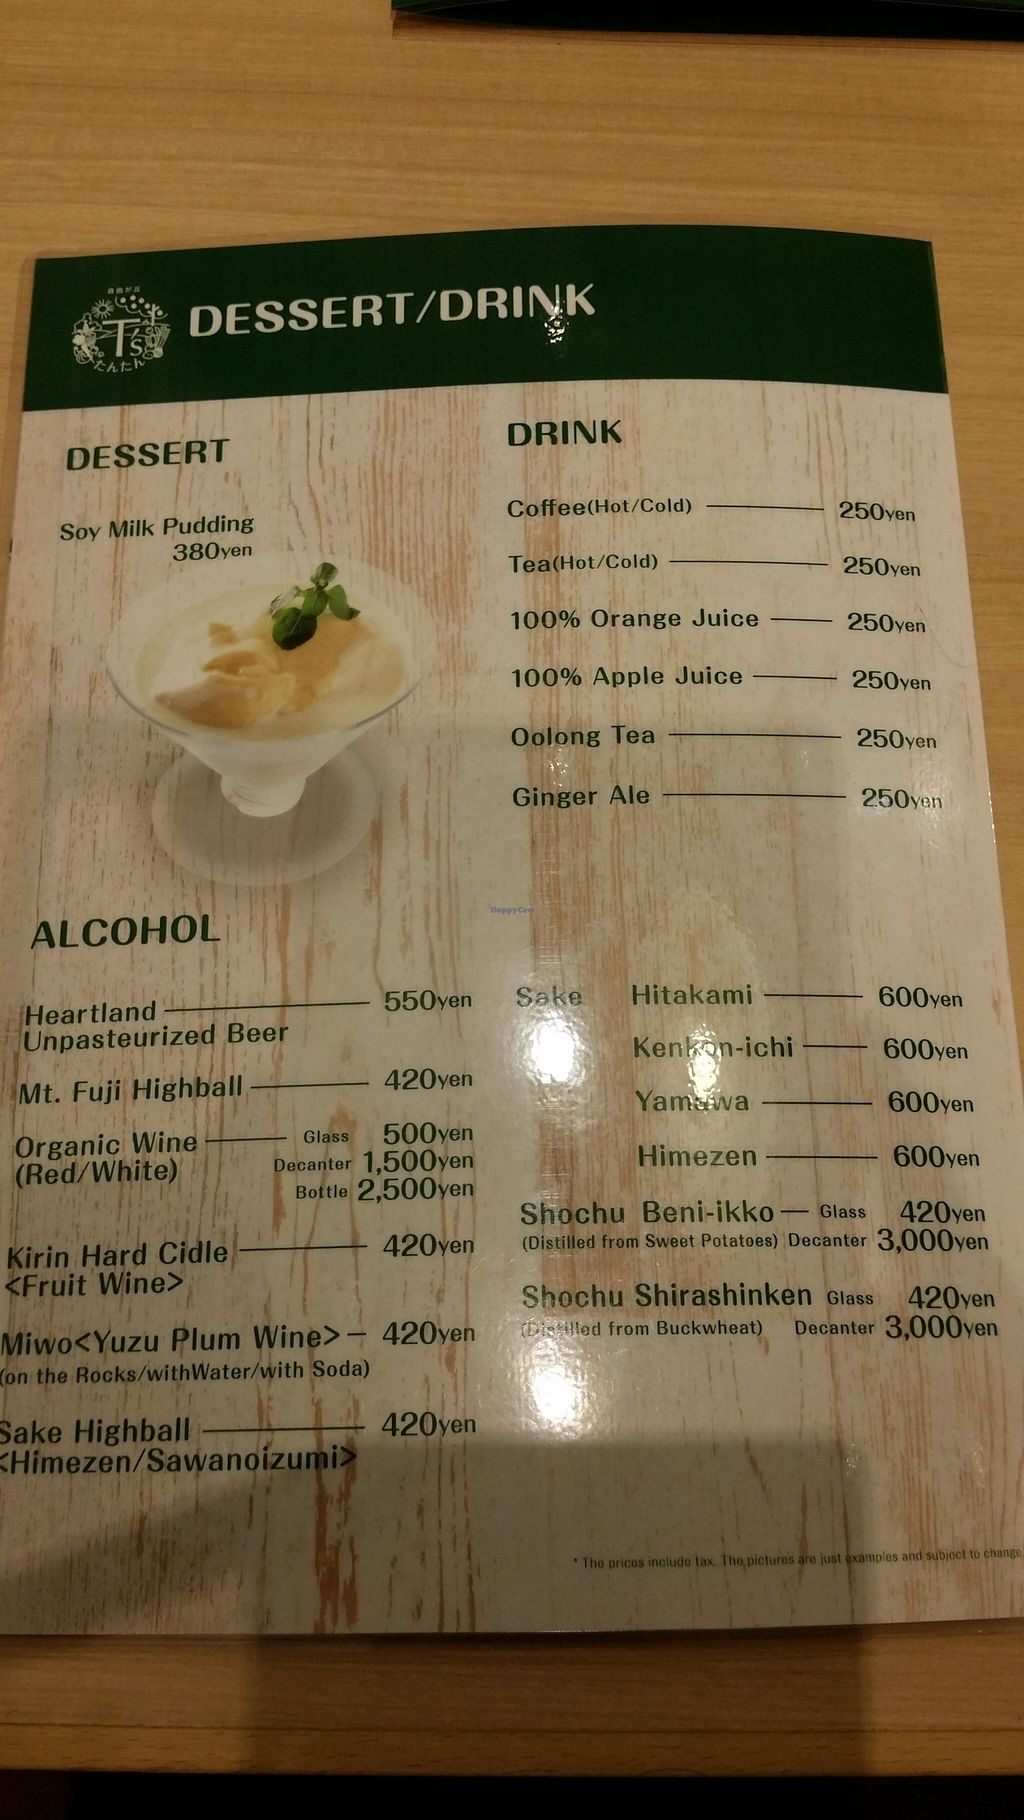 """Photo of T's Tan Tan  by <a href=""""/members/profile/Jeane"""">Jeane</a> <br/>English menu (drinks) <br/> September 15, 2015  - <a href='/contact/abuse/image/57492/117816'>Report</a>"""